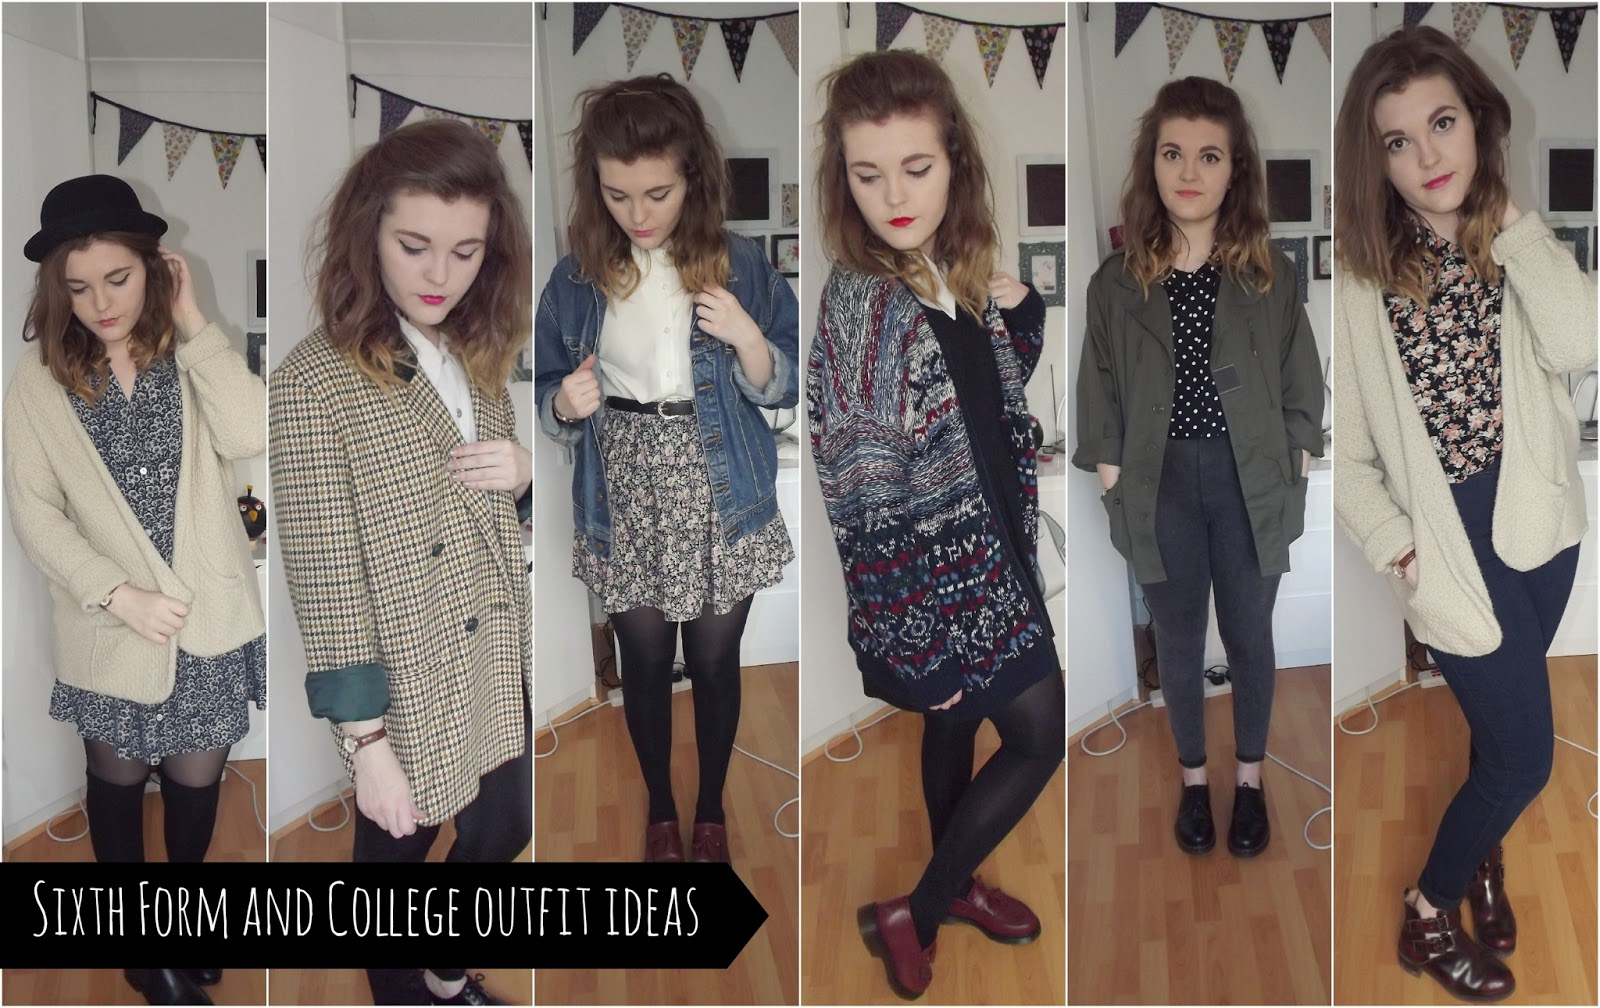 The Lucy Rose Fashion Uk Fashion Blog Sixth Form And College Outfit Ideas